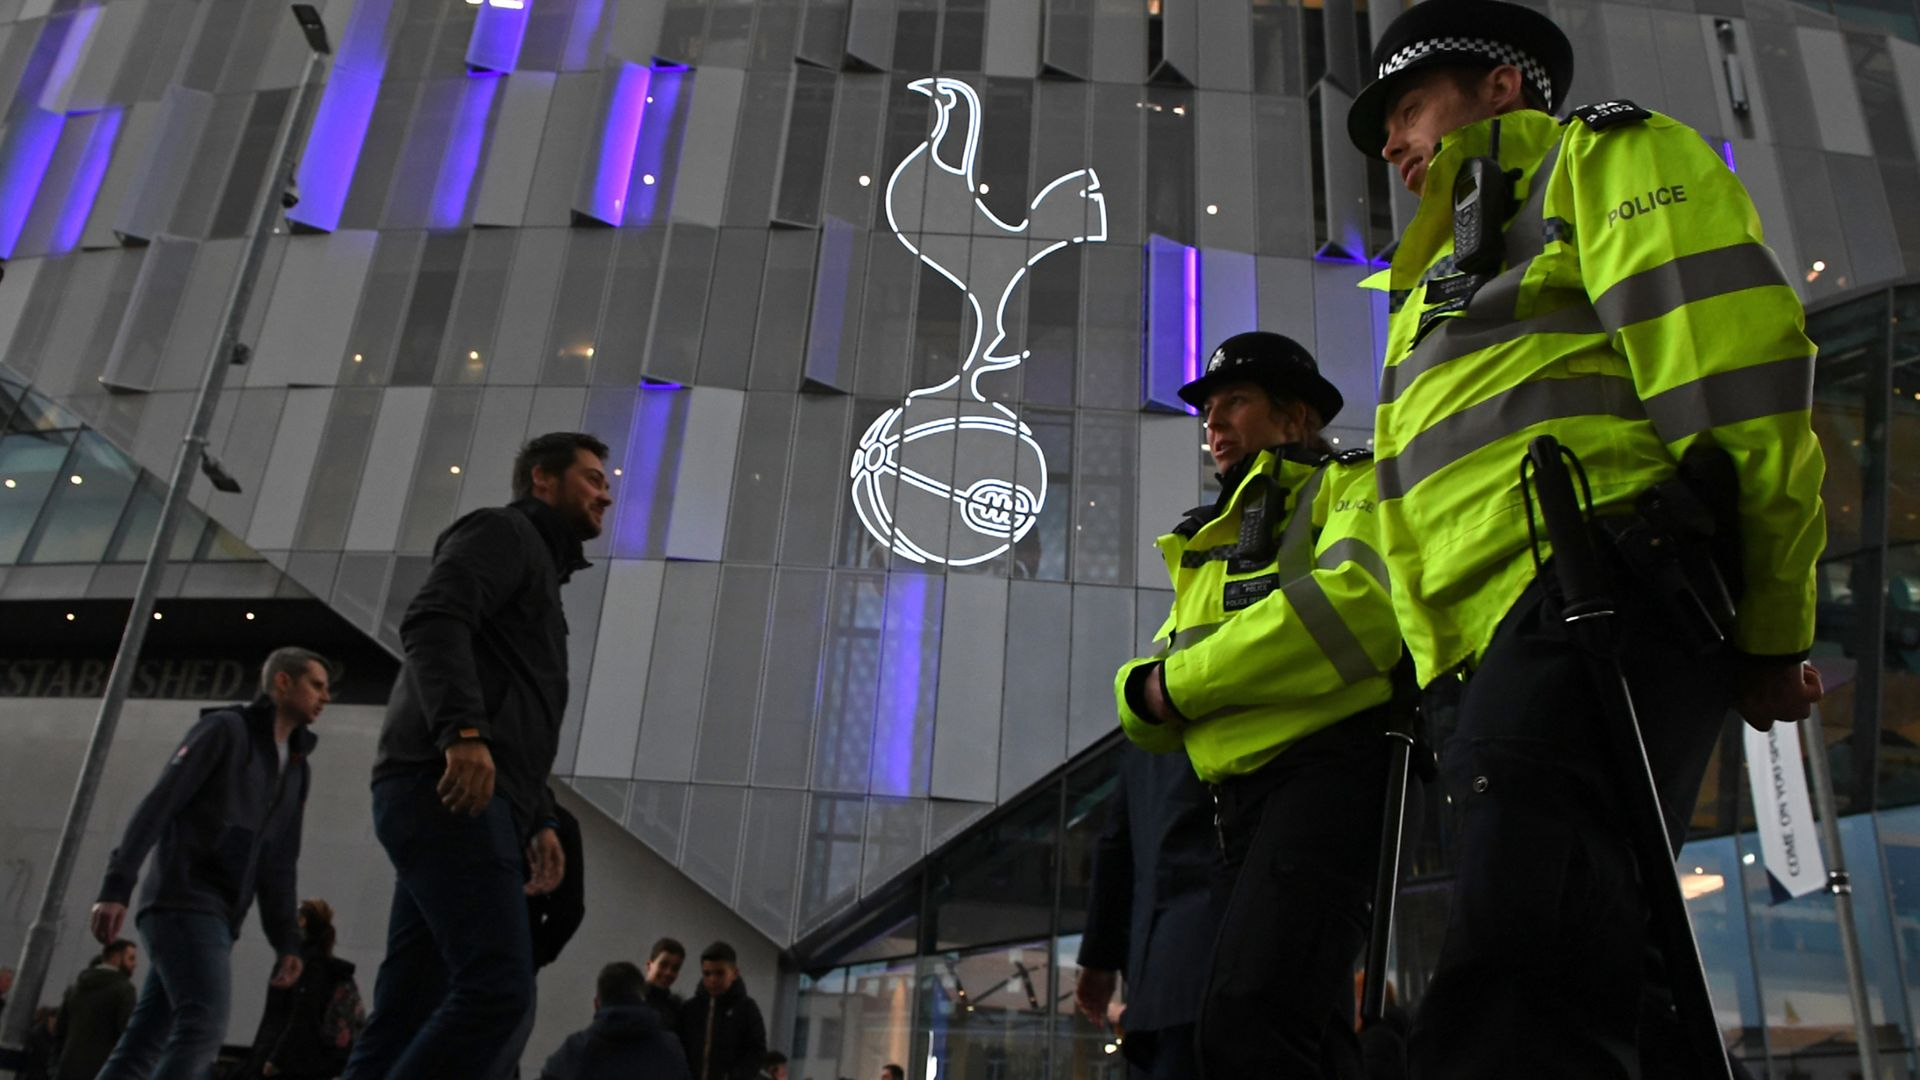 PL clubs hope police support will scrap neutral venues